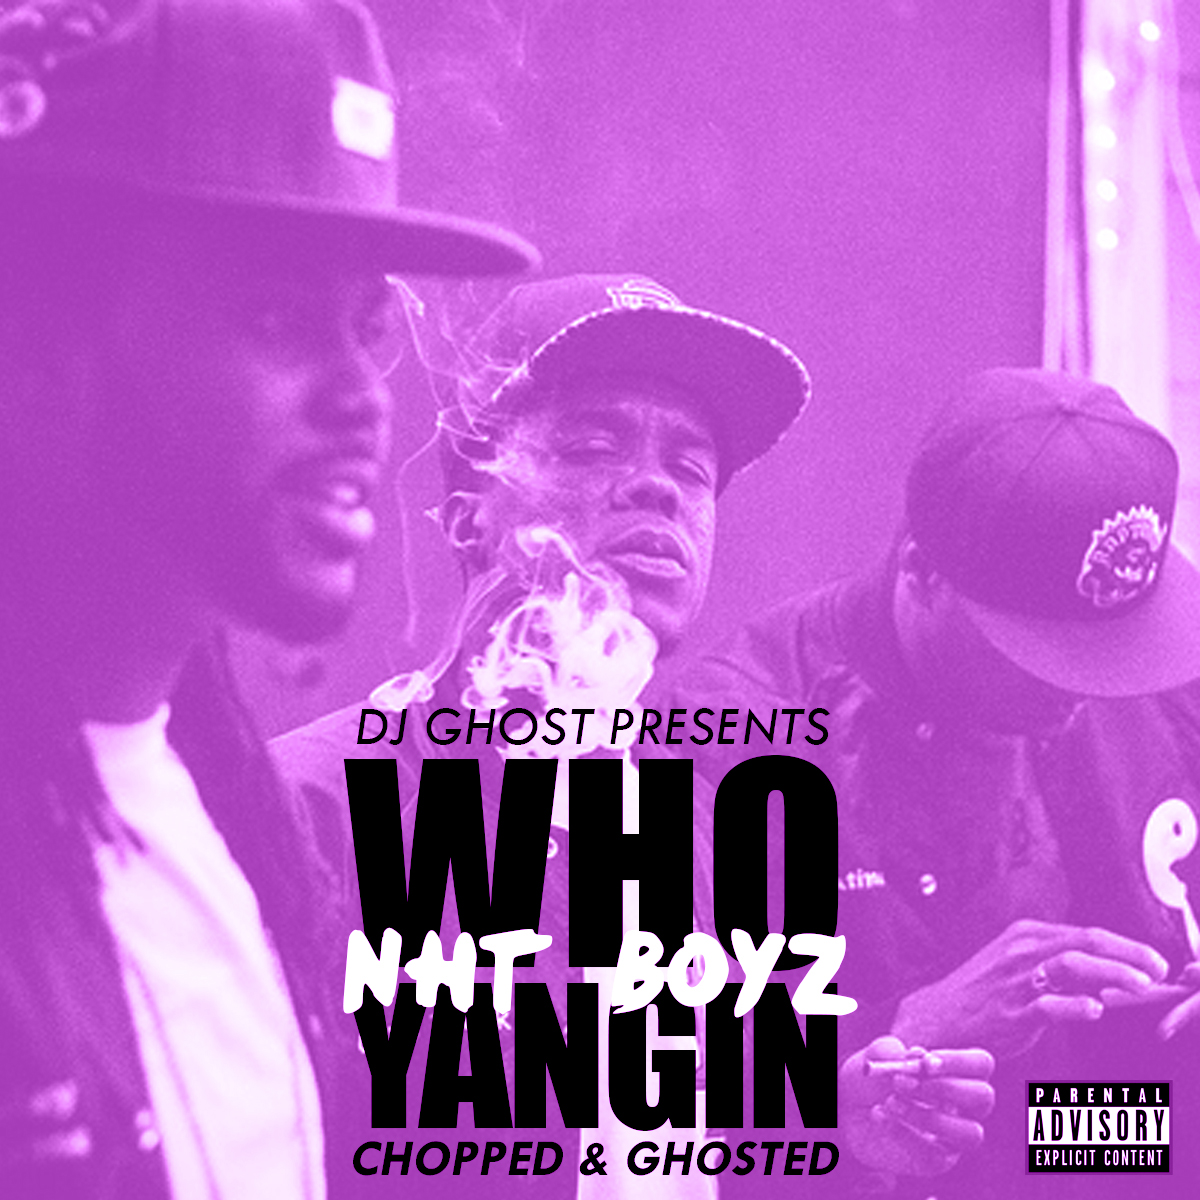 DJ Ghost presents NhT Boyz - Who Yangin (Chopped & Ghosted) [Thizzler.com Exclusive]